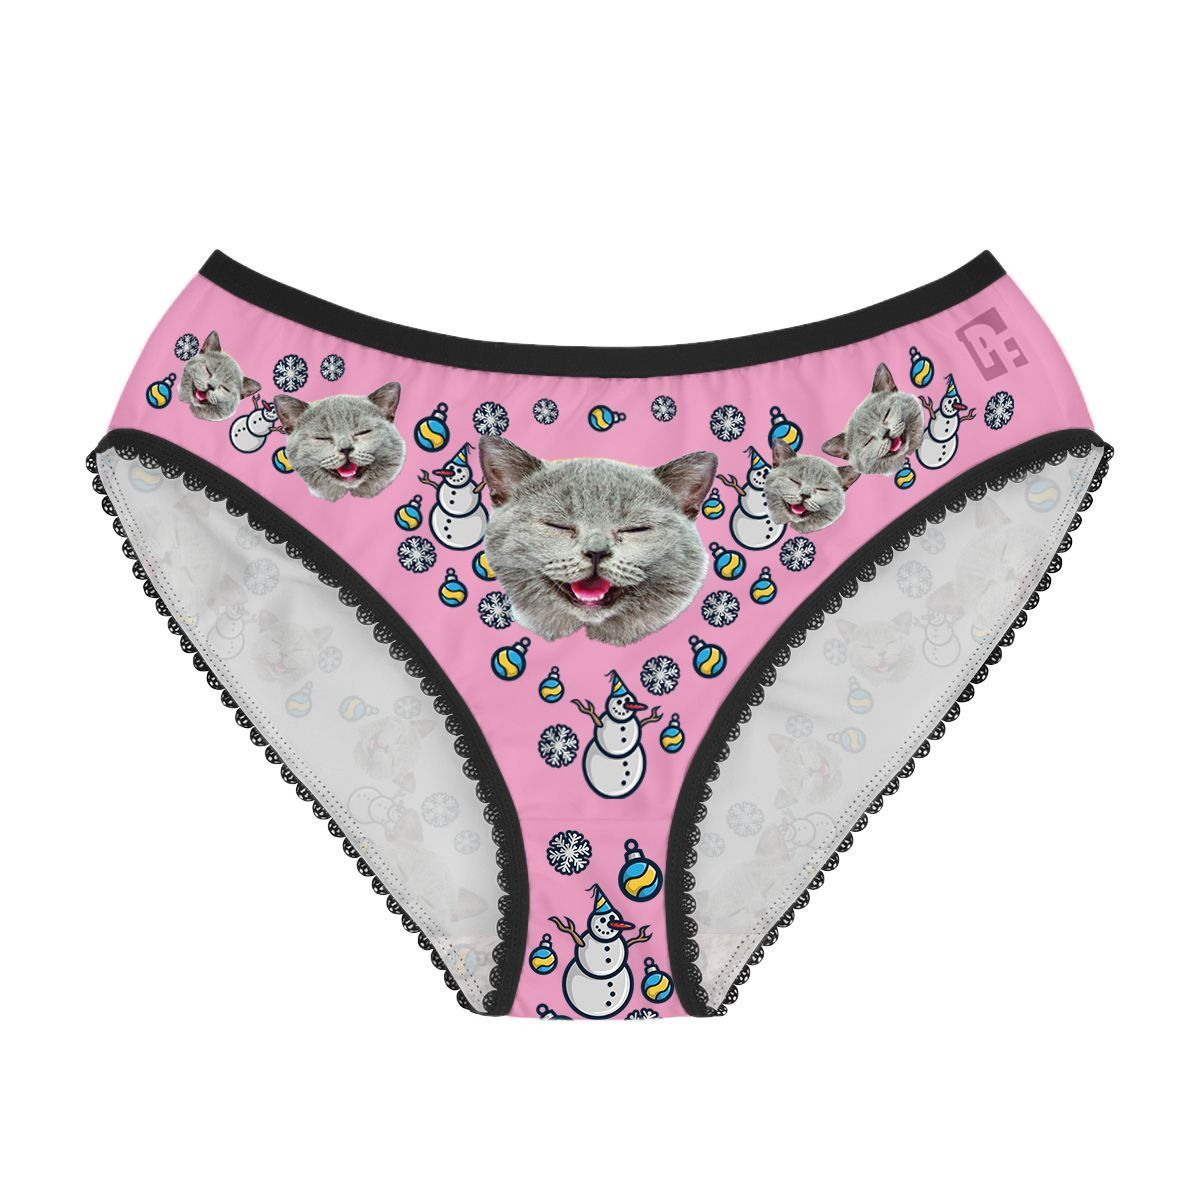 Pink Snowman women's underwear briefs personalized with photo printed on them